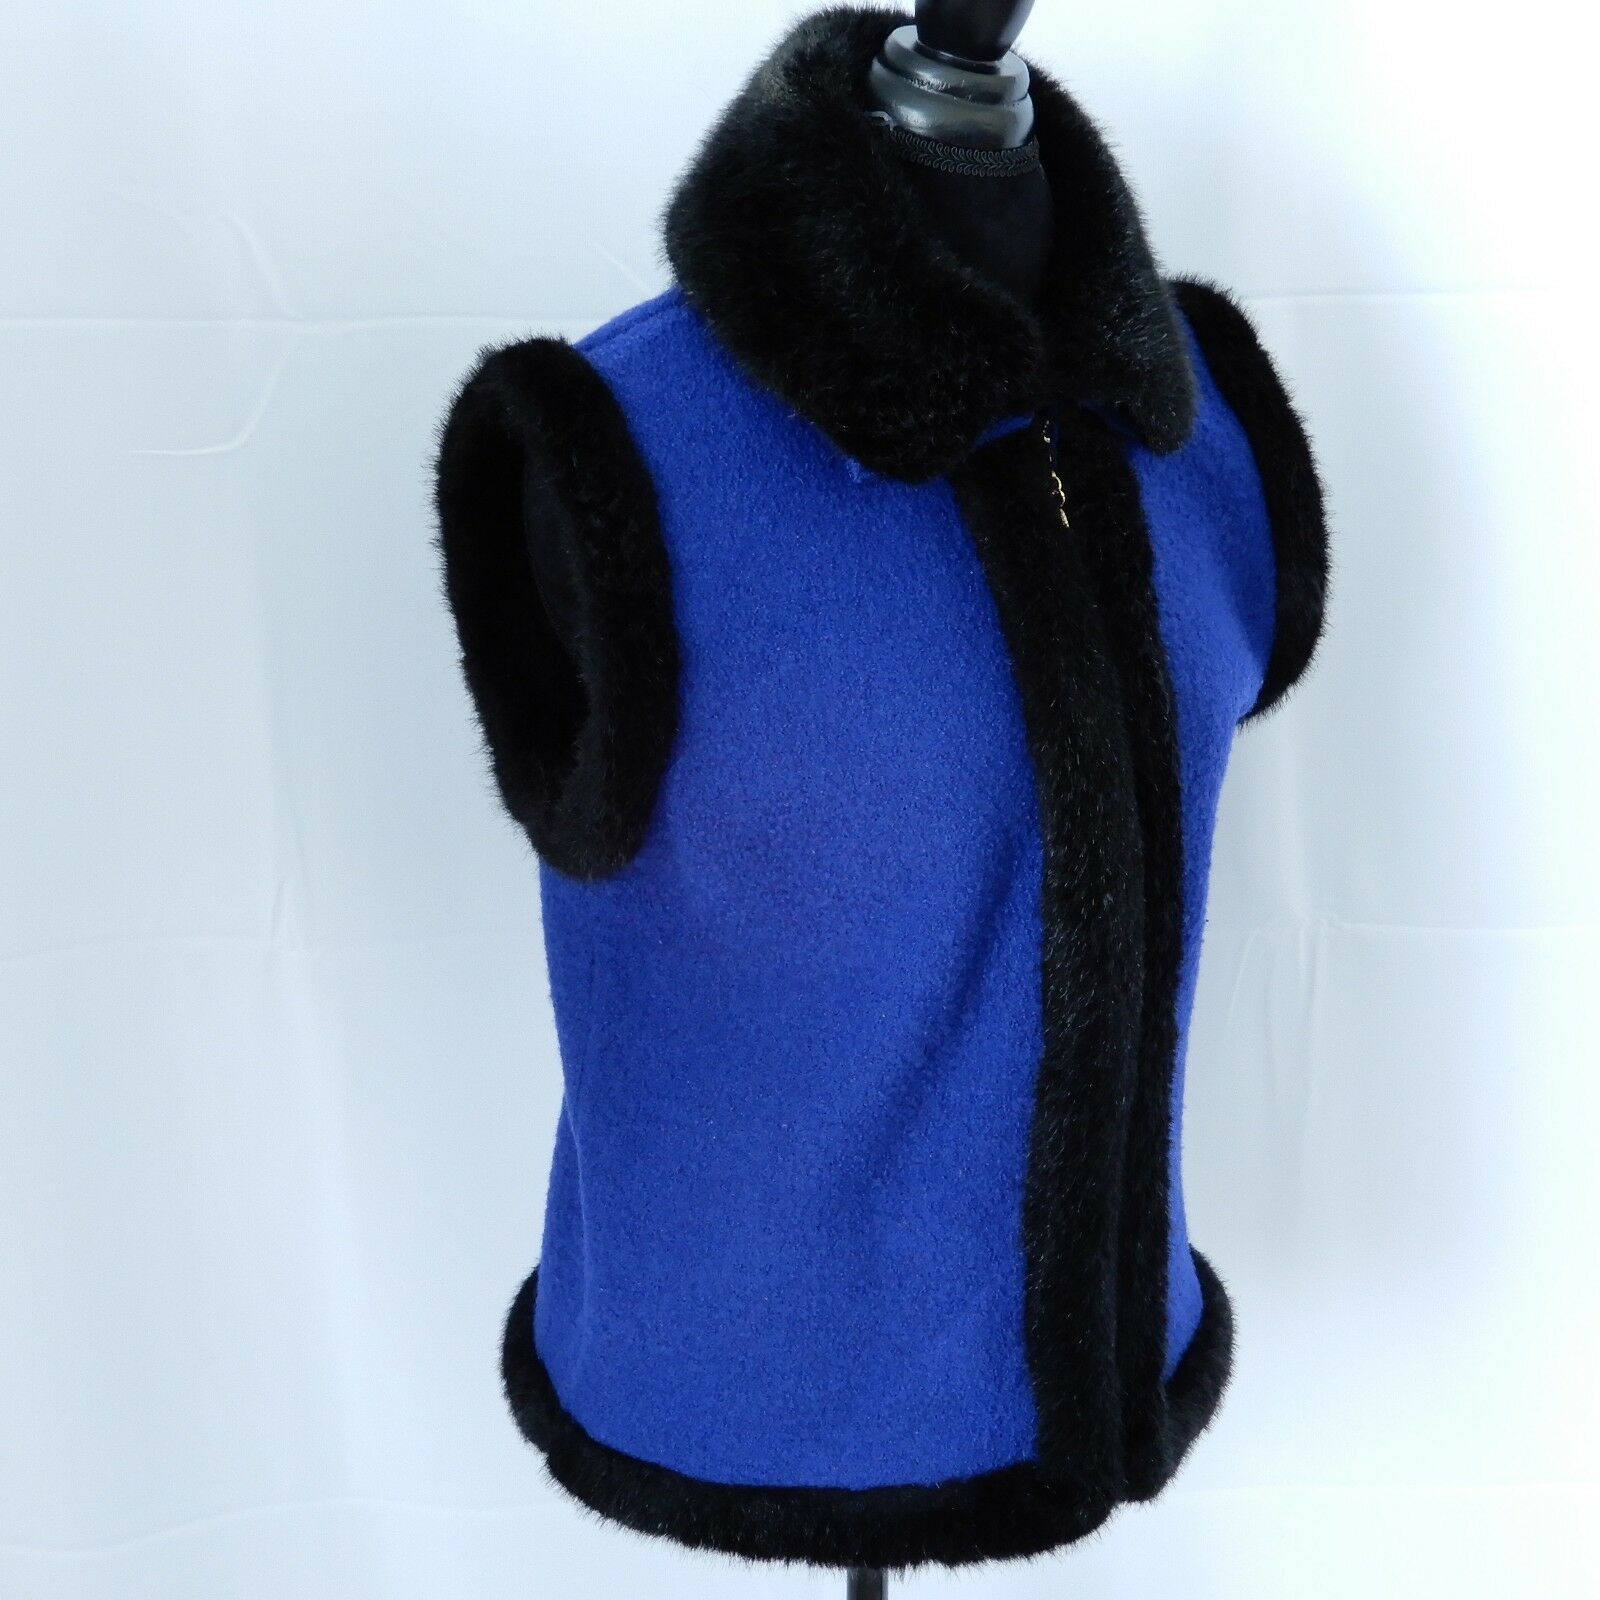 Lisa International Vest Size Medium bluee bluee bluee Boiled Wool Faux Fur Detachable Collar 66e511